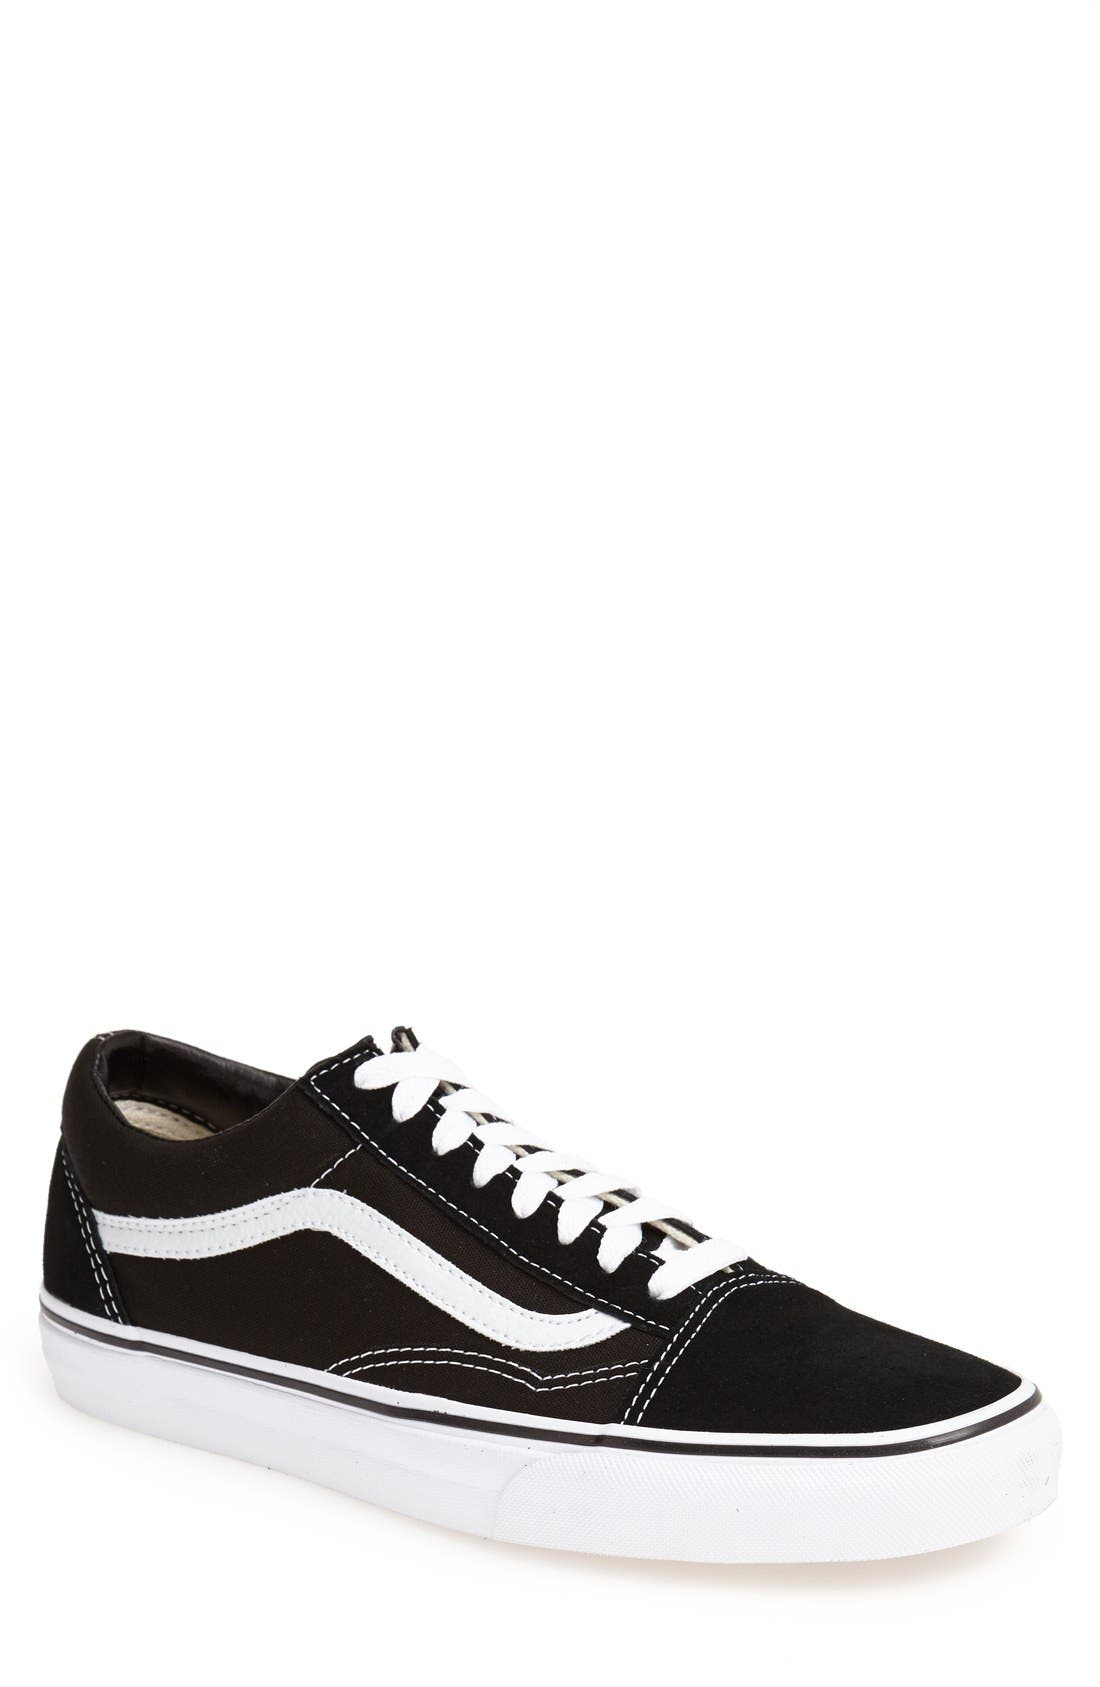 Vans 'Old Skool' Sneaker (Men)